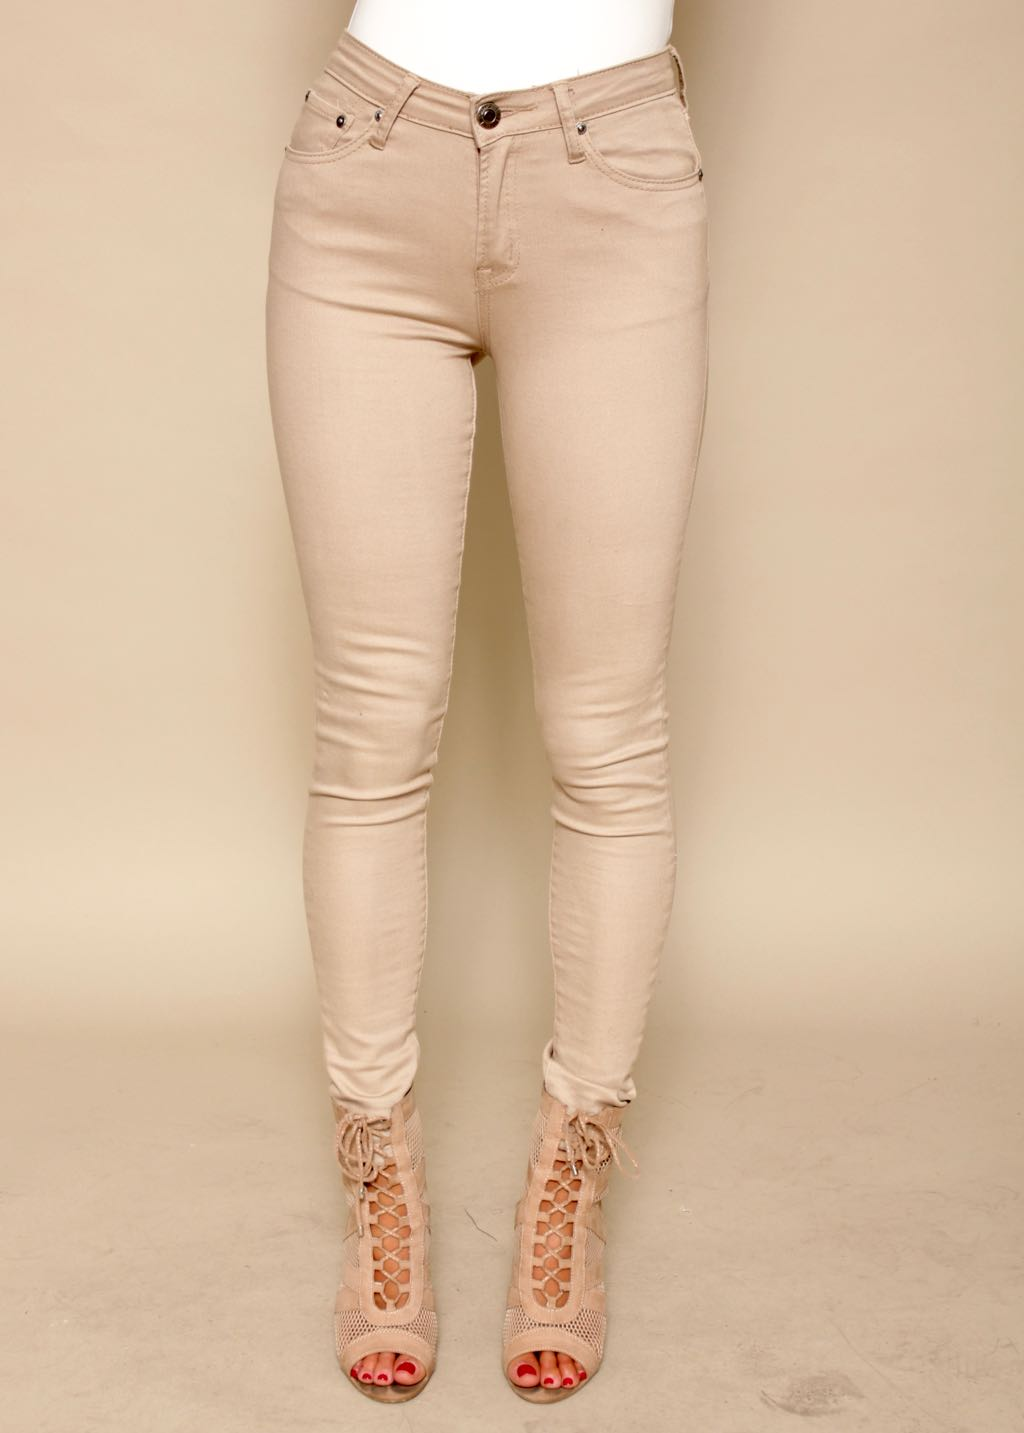 Tunnel Vision Jeans - Fawn